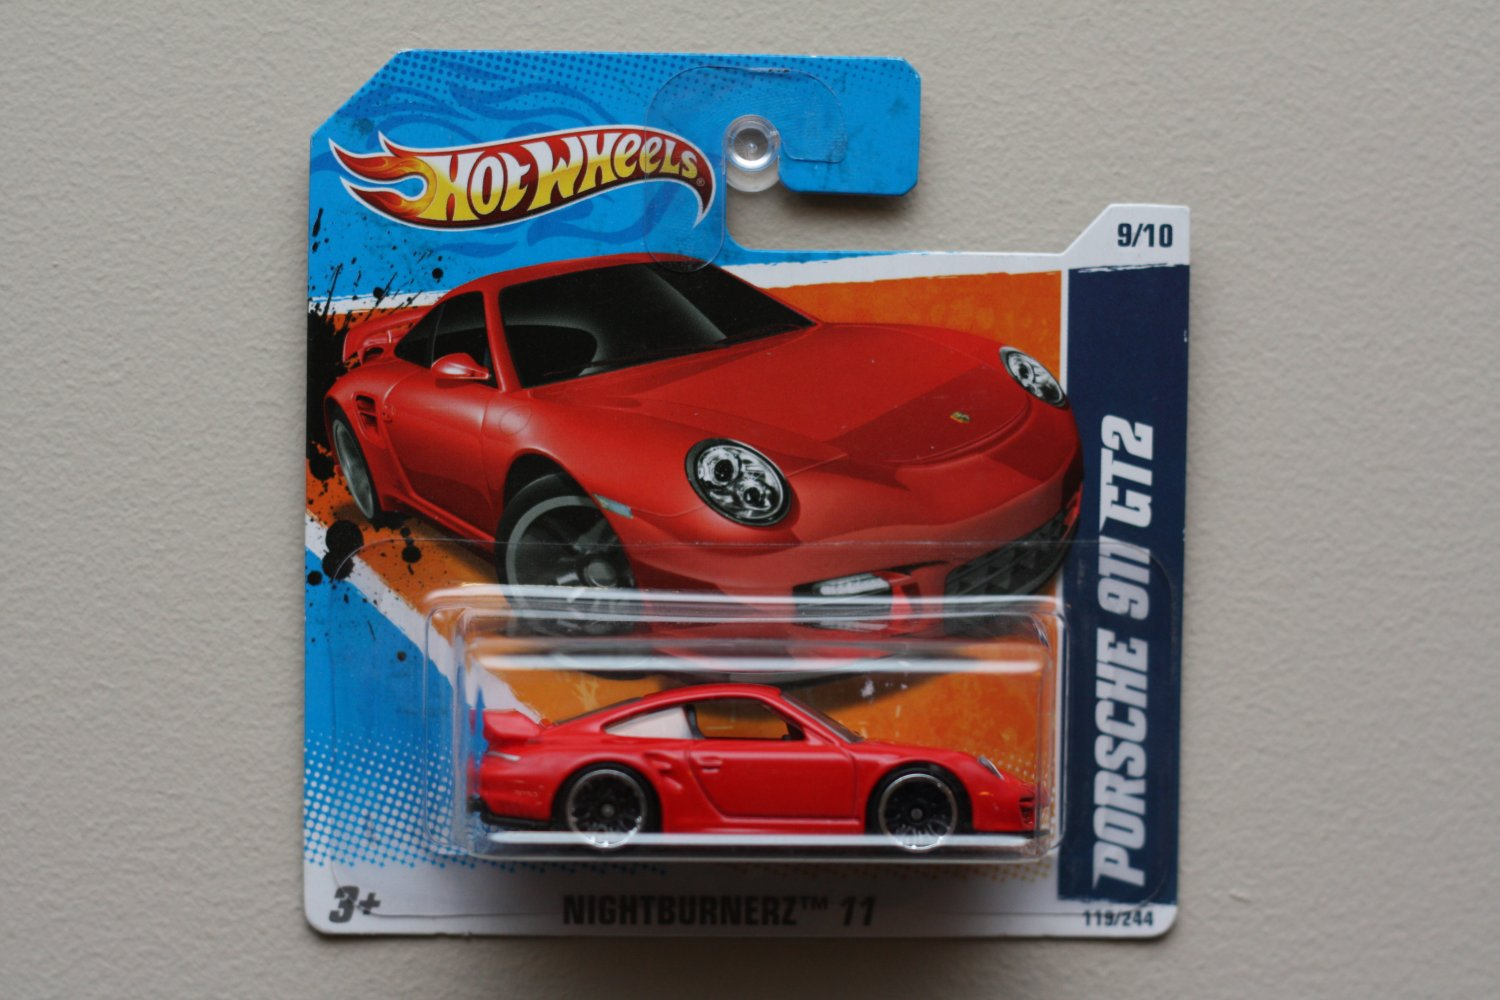 hot wheels 2011 nightburnerz porsche 911 gt2 red. Black Bedroom Furniture Sets. Home Design Ideas